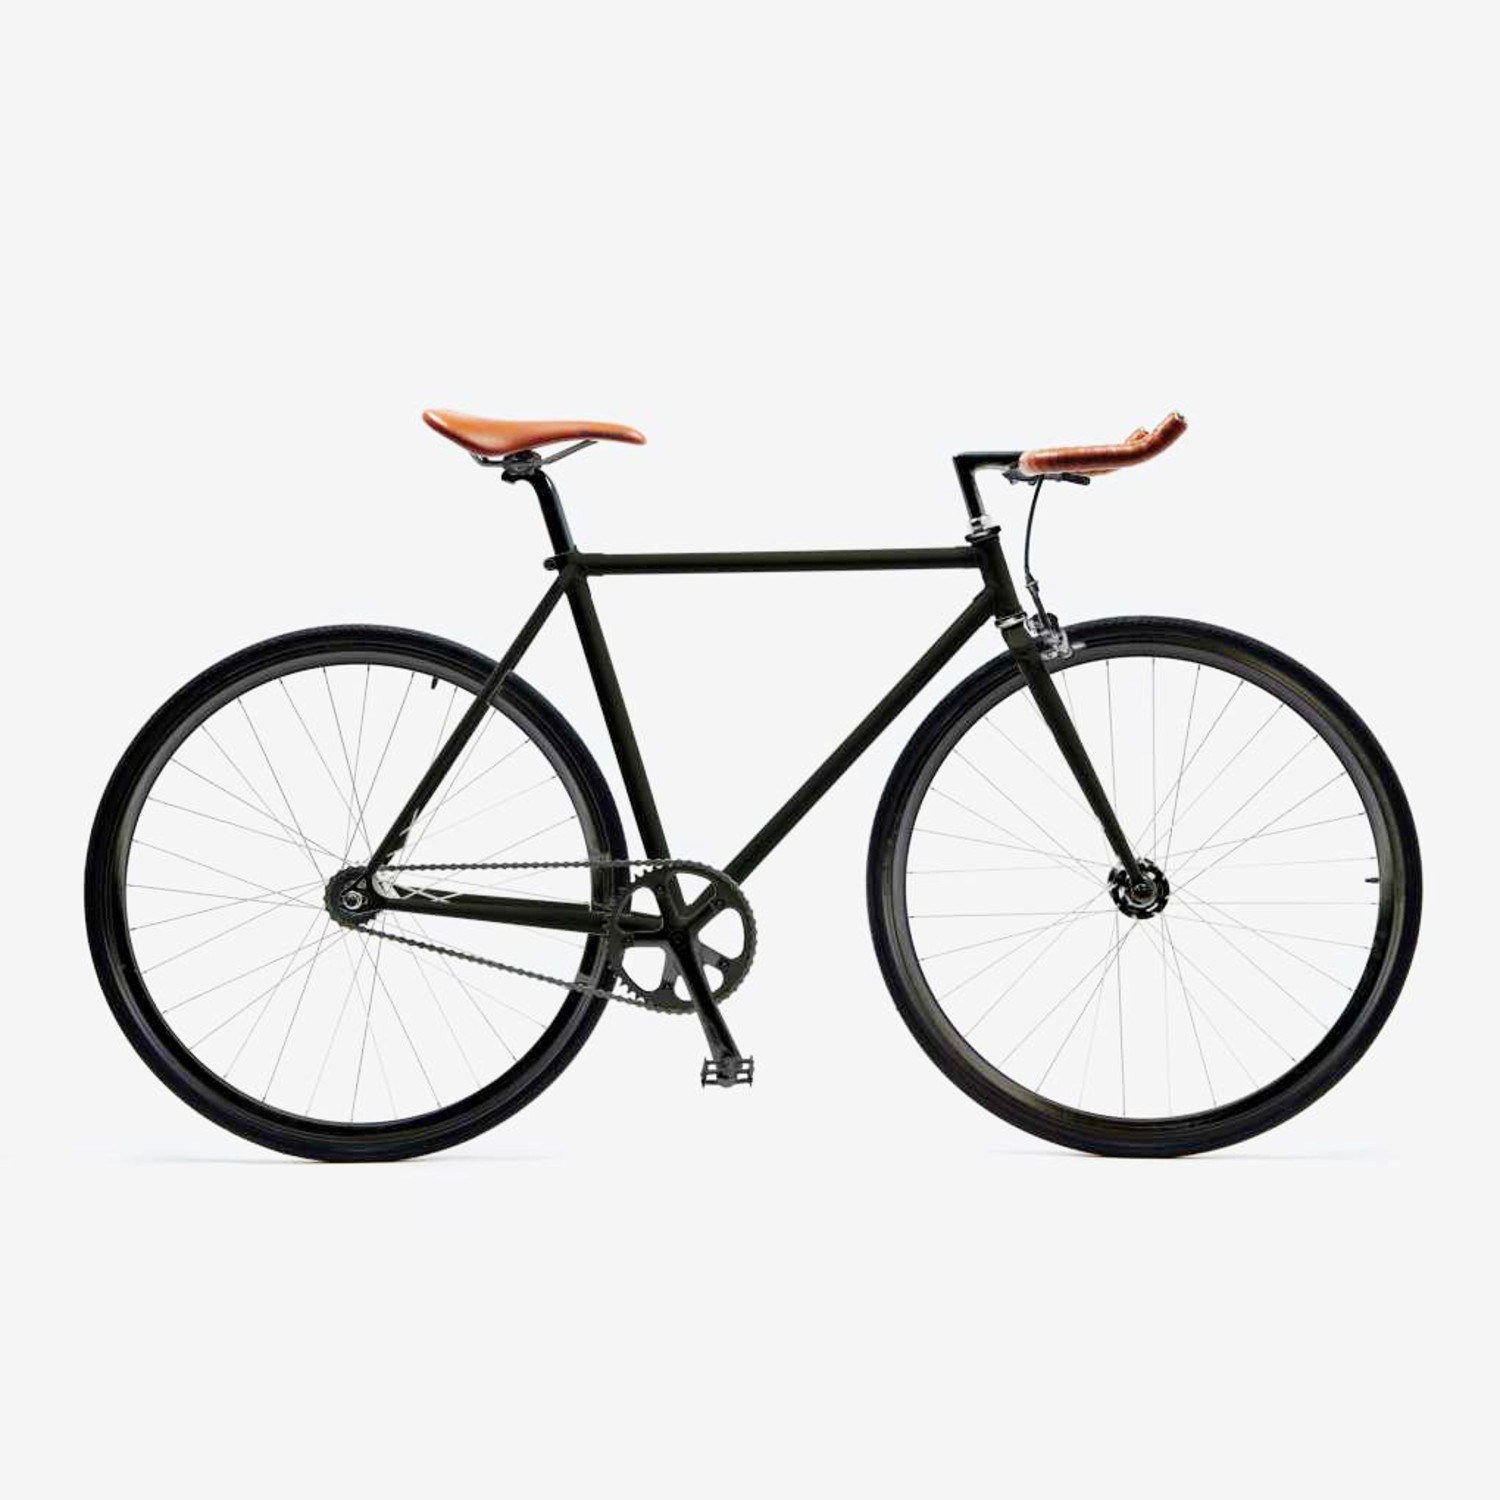 Bicycle Frame Components Component Terminology Explained Veloreviews Matte Black With Bullhorn Handlebar 1500x1500